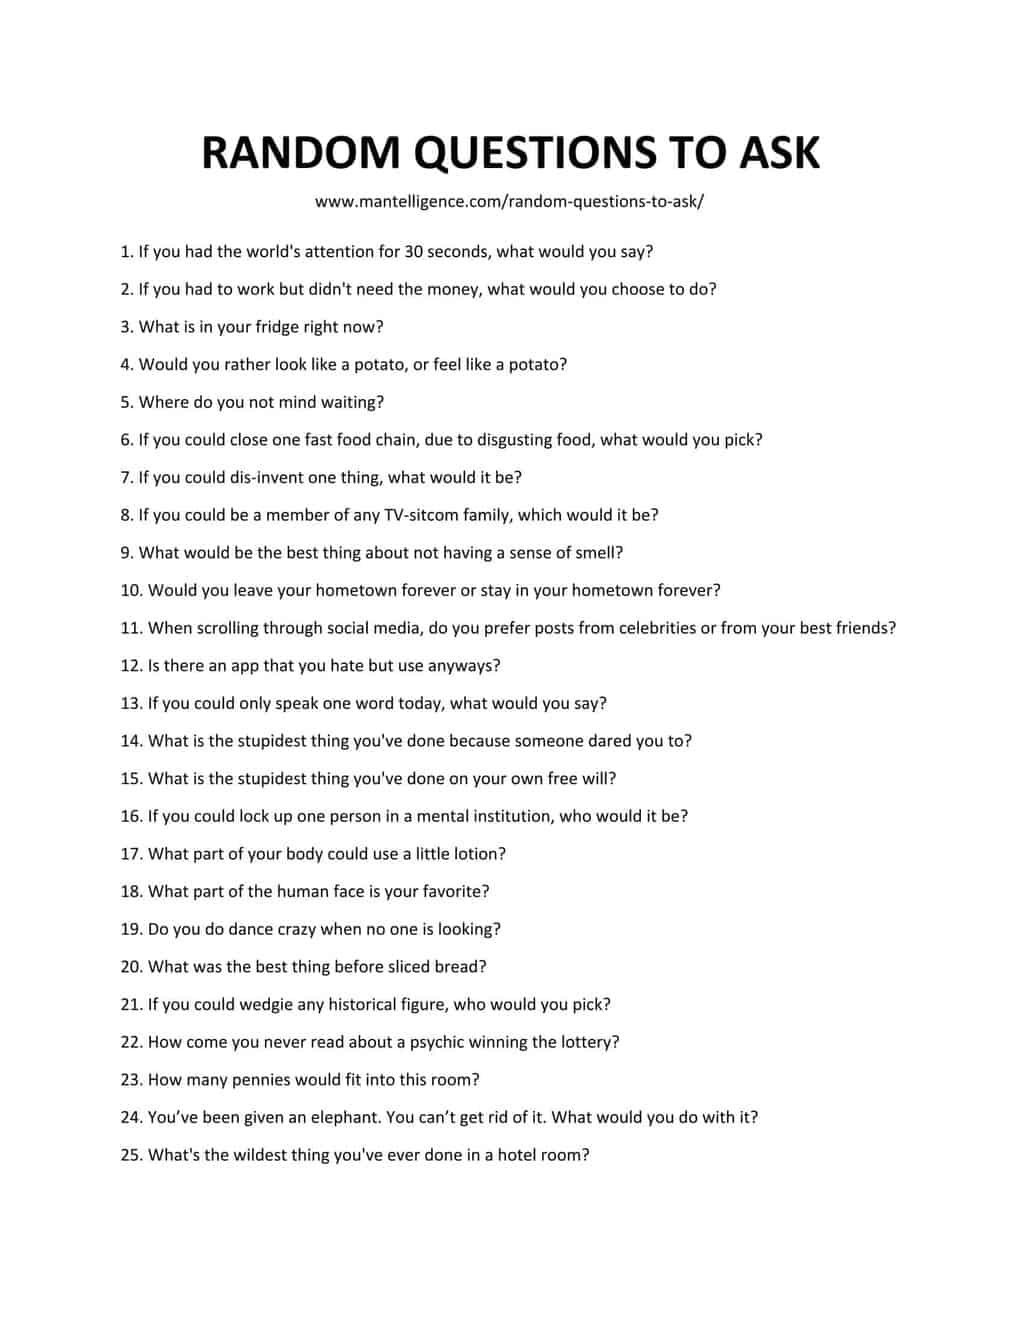 List of Random Questions To Ask